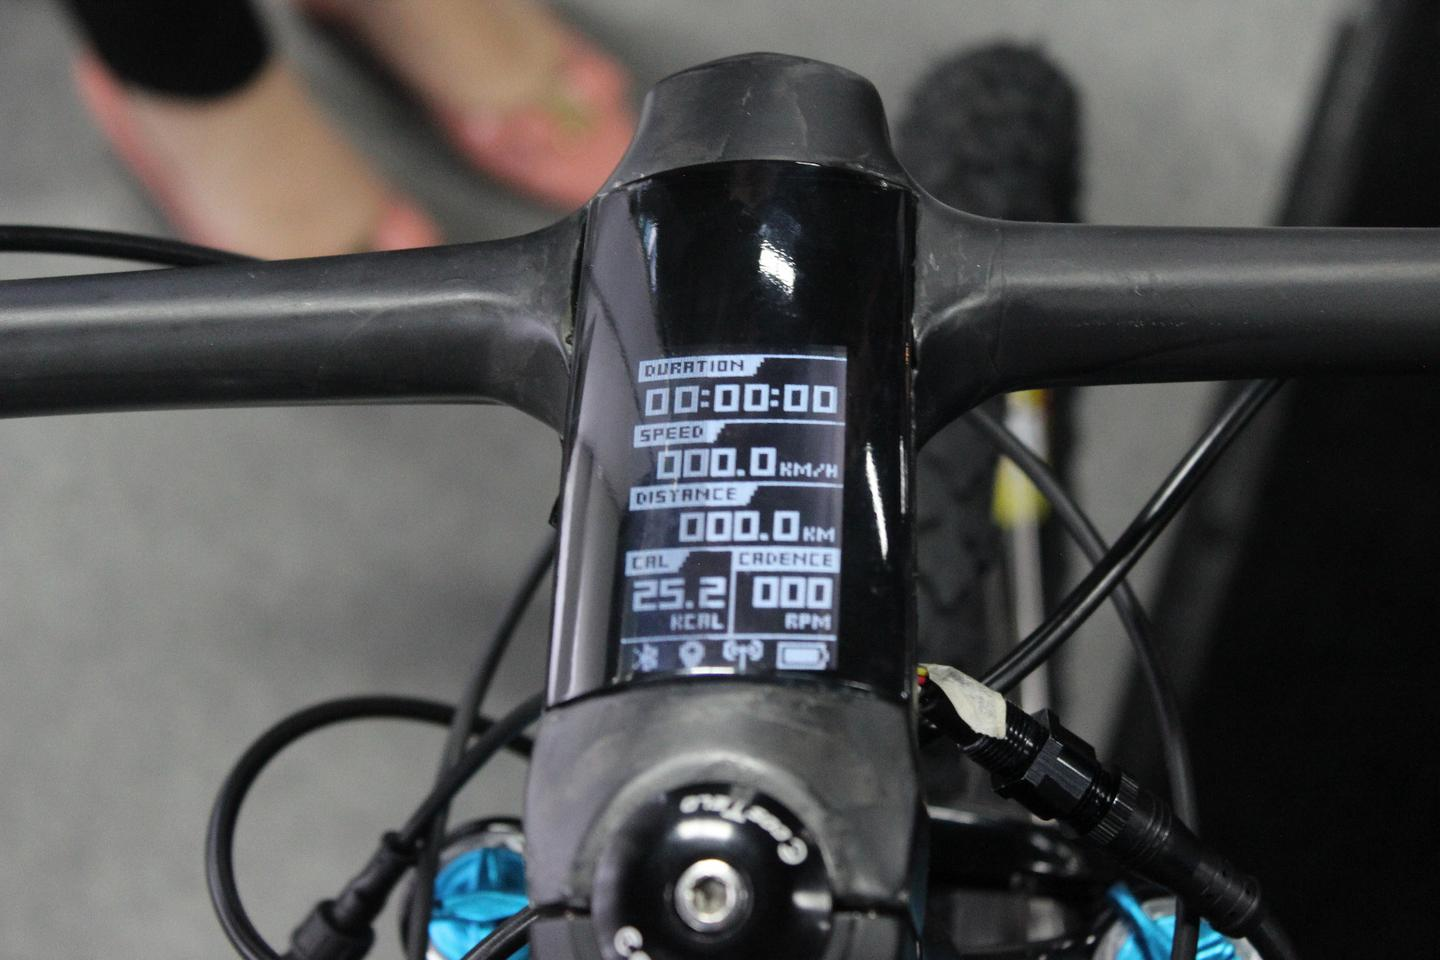 The Cotlo Corvus' OLED screen displays data such as current speed, distance traveled, calories burned and cadence